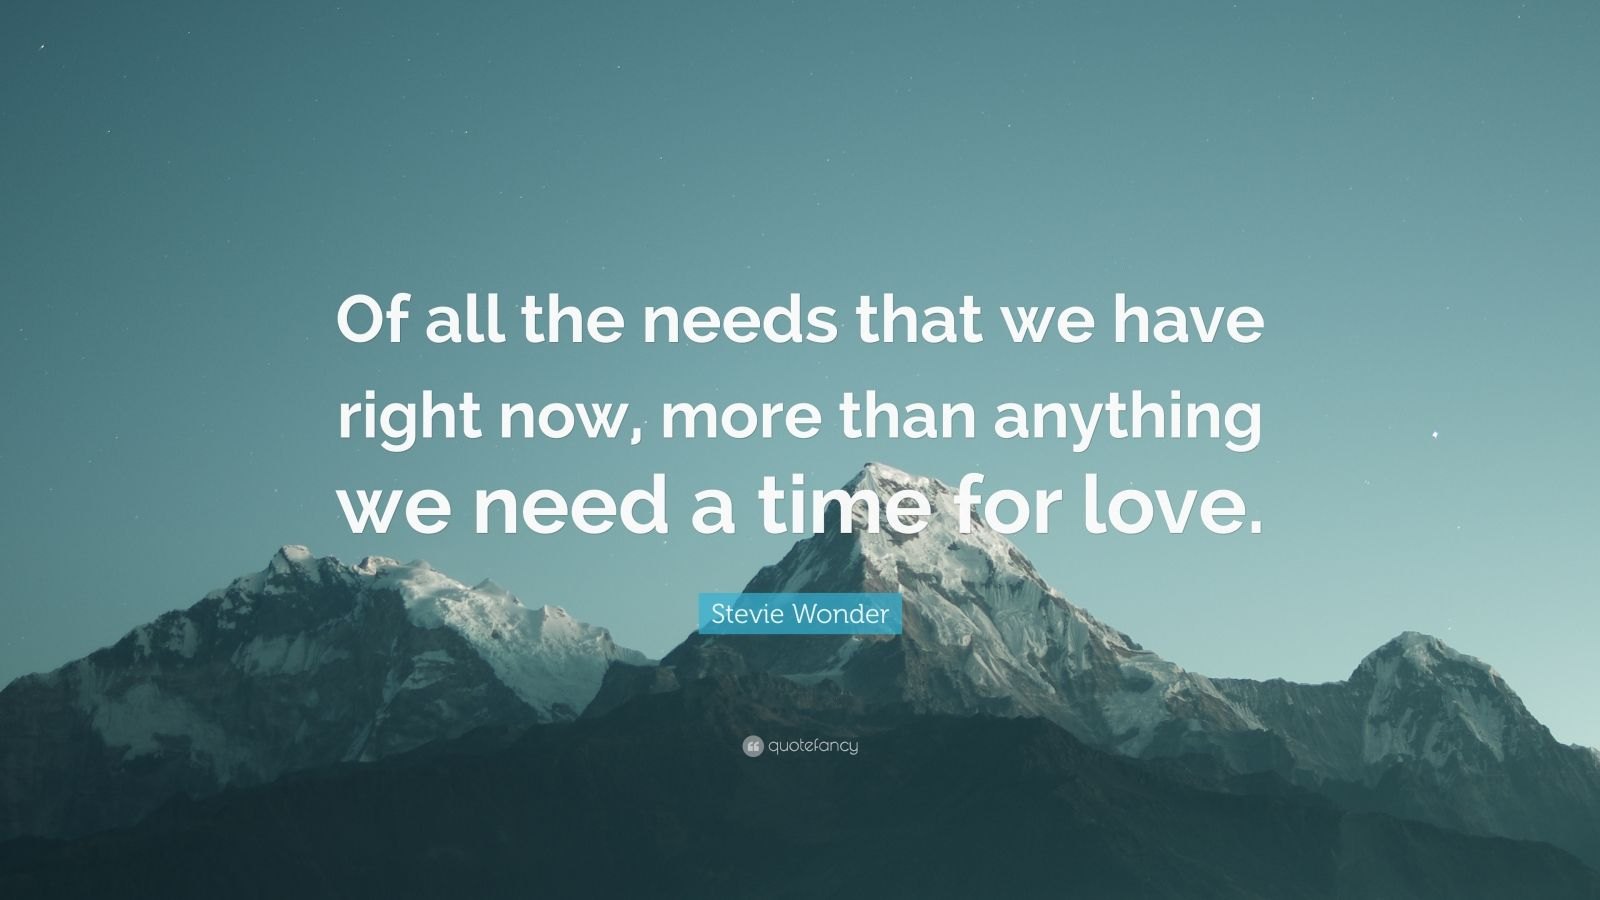 """Stevie Wonder Quote: """"Of all the needs that we have right now, more than anything we need a time for love."""""""